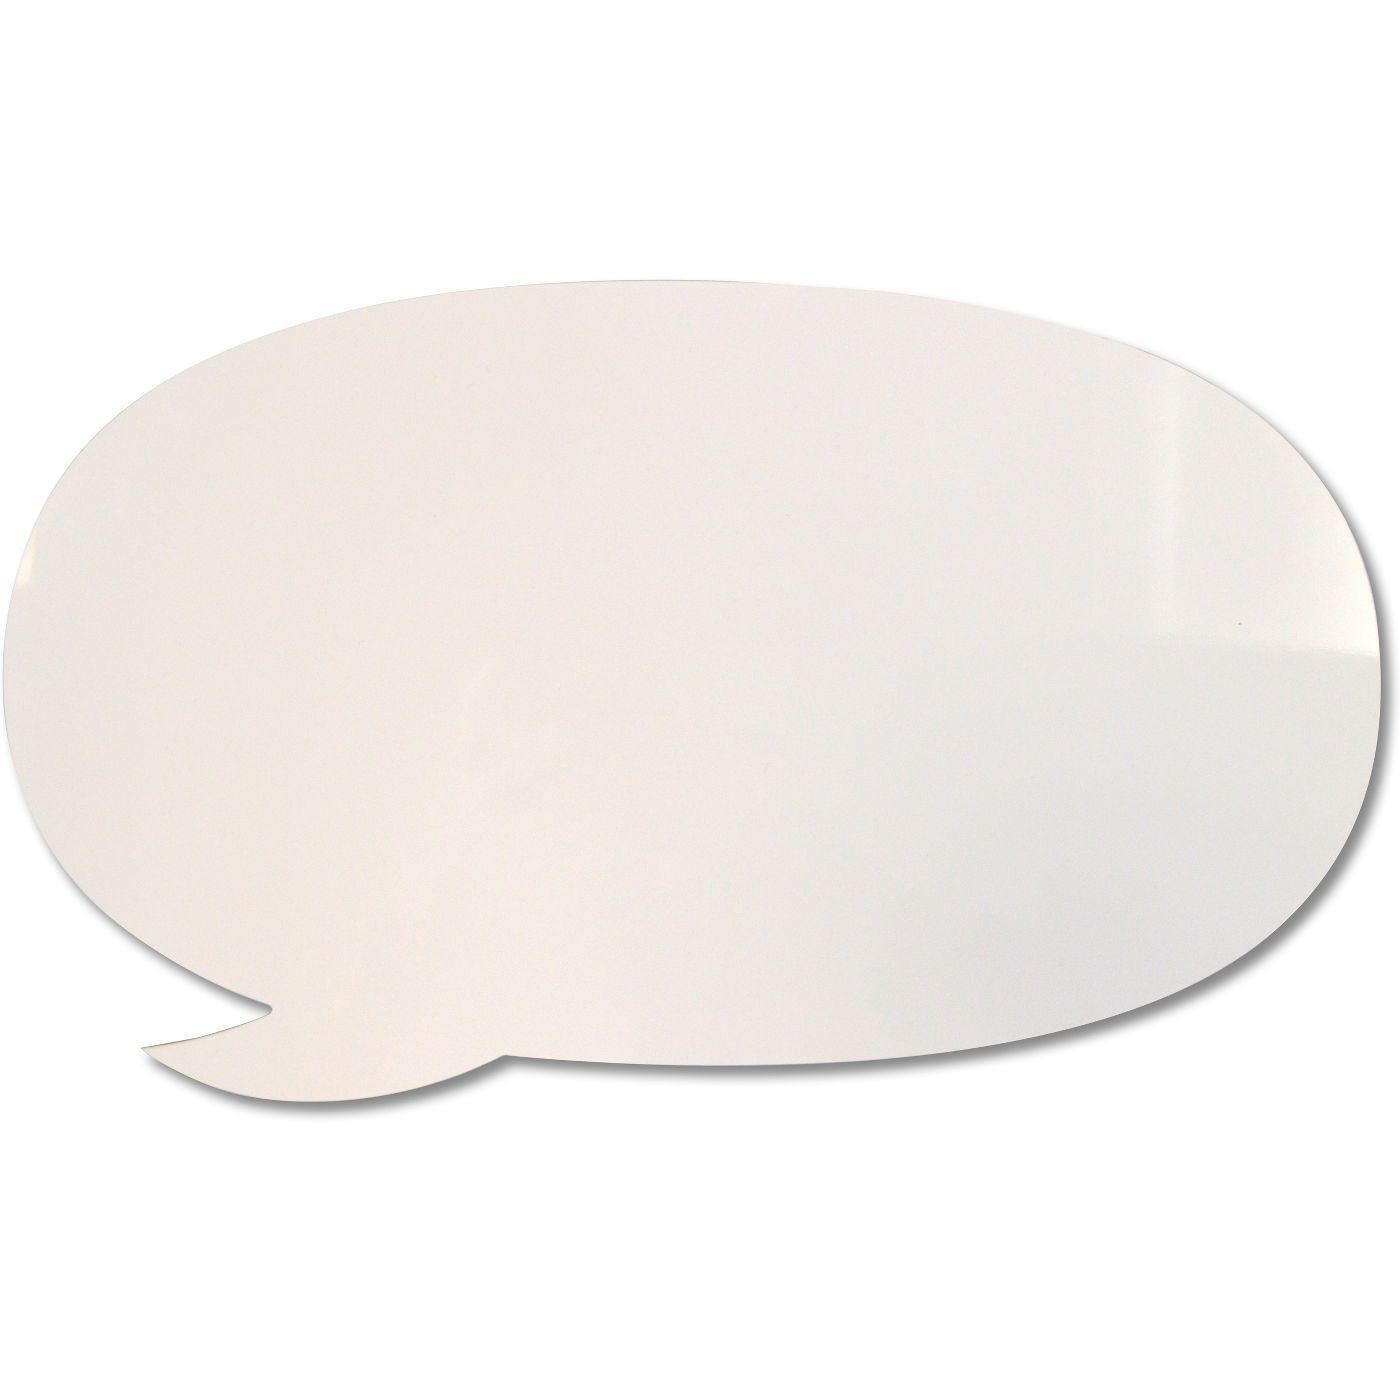 Dry Erase Board Speech Bubble